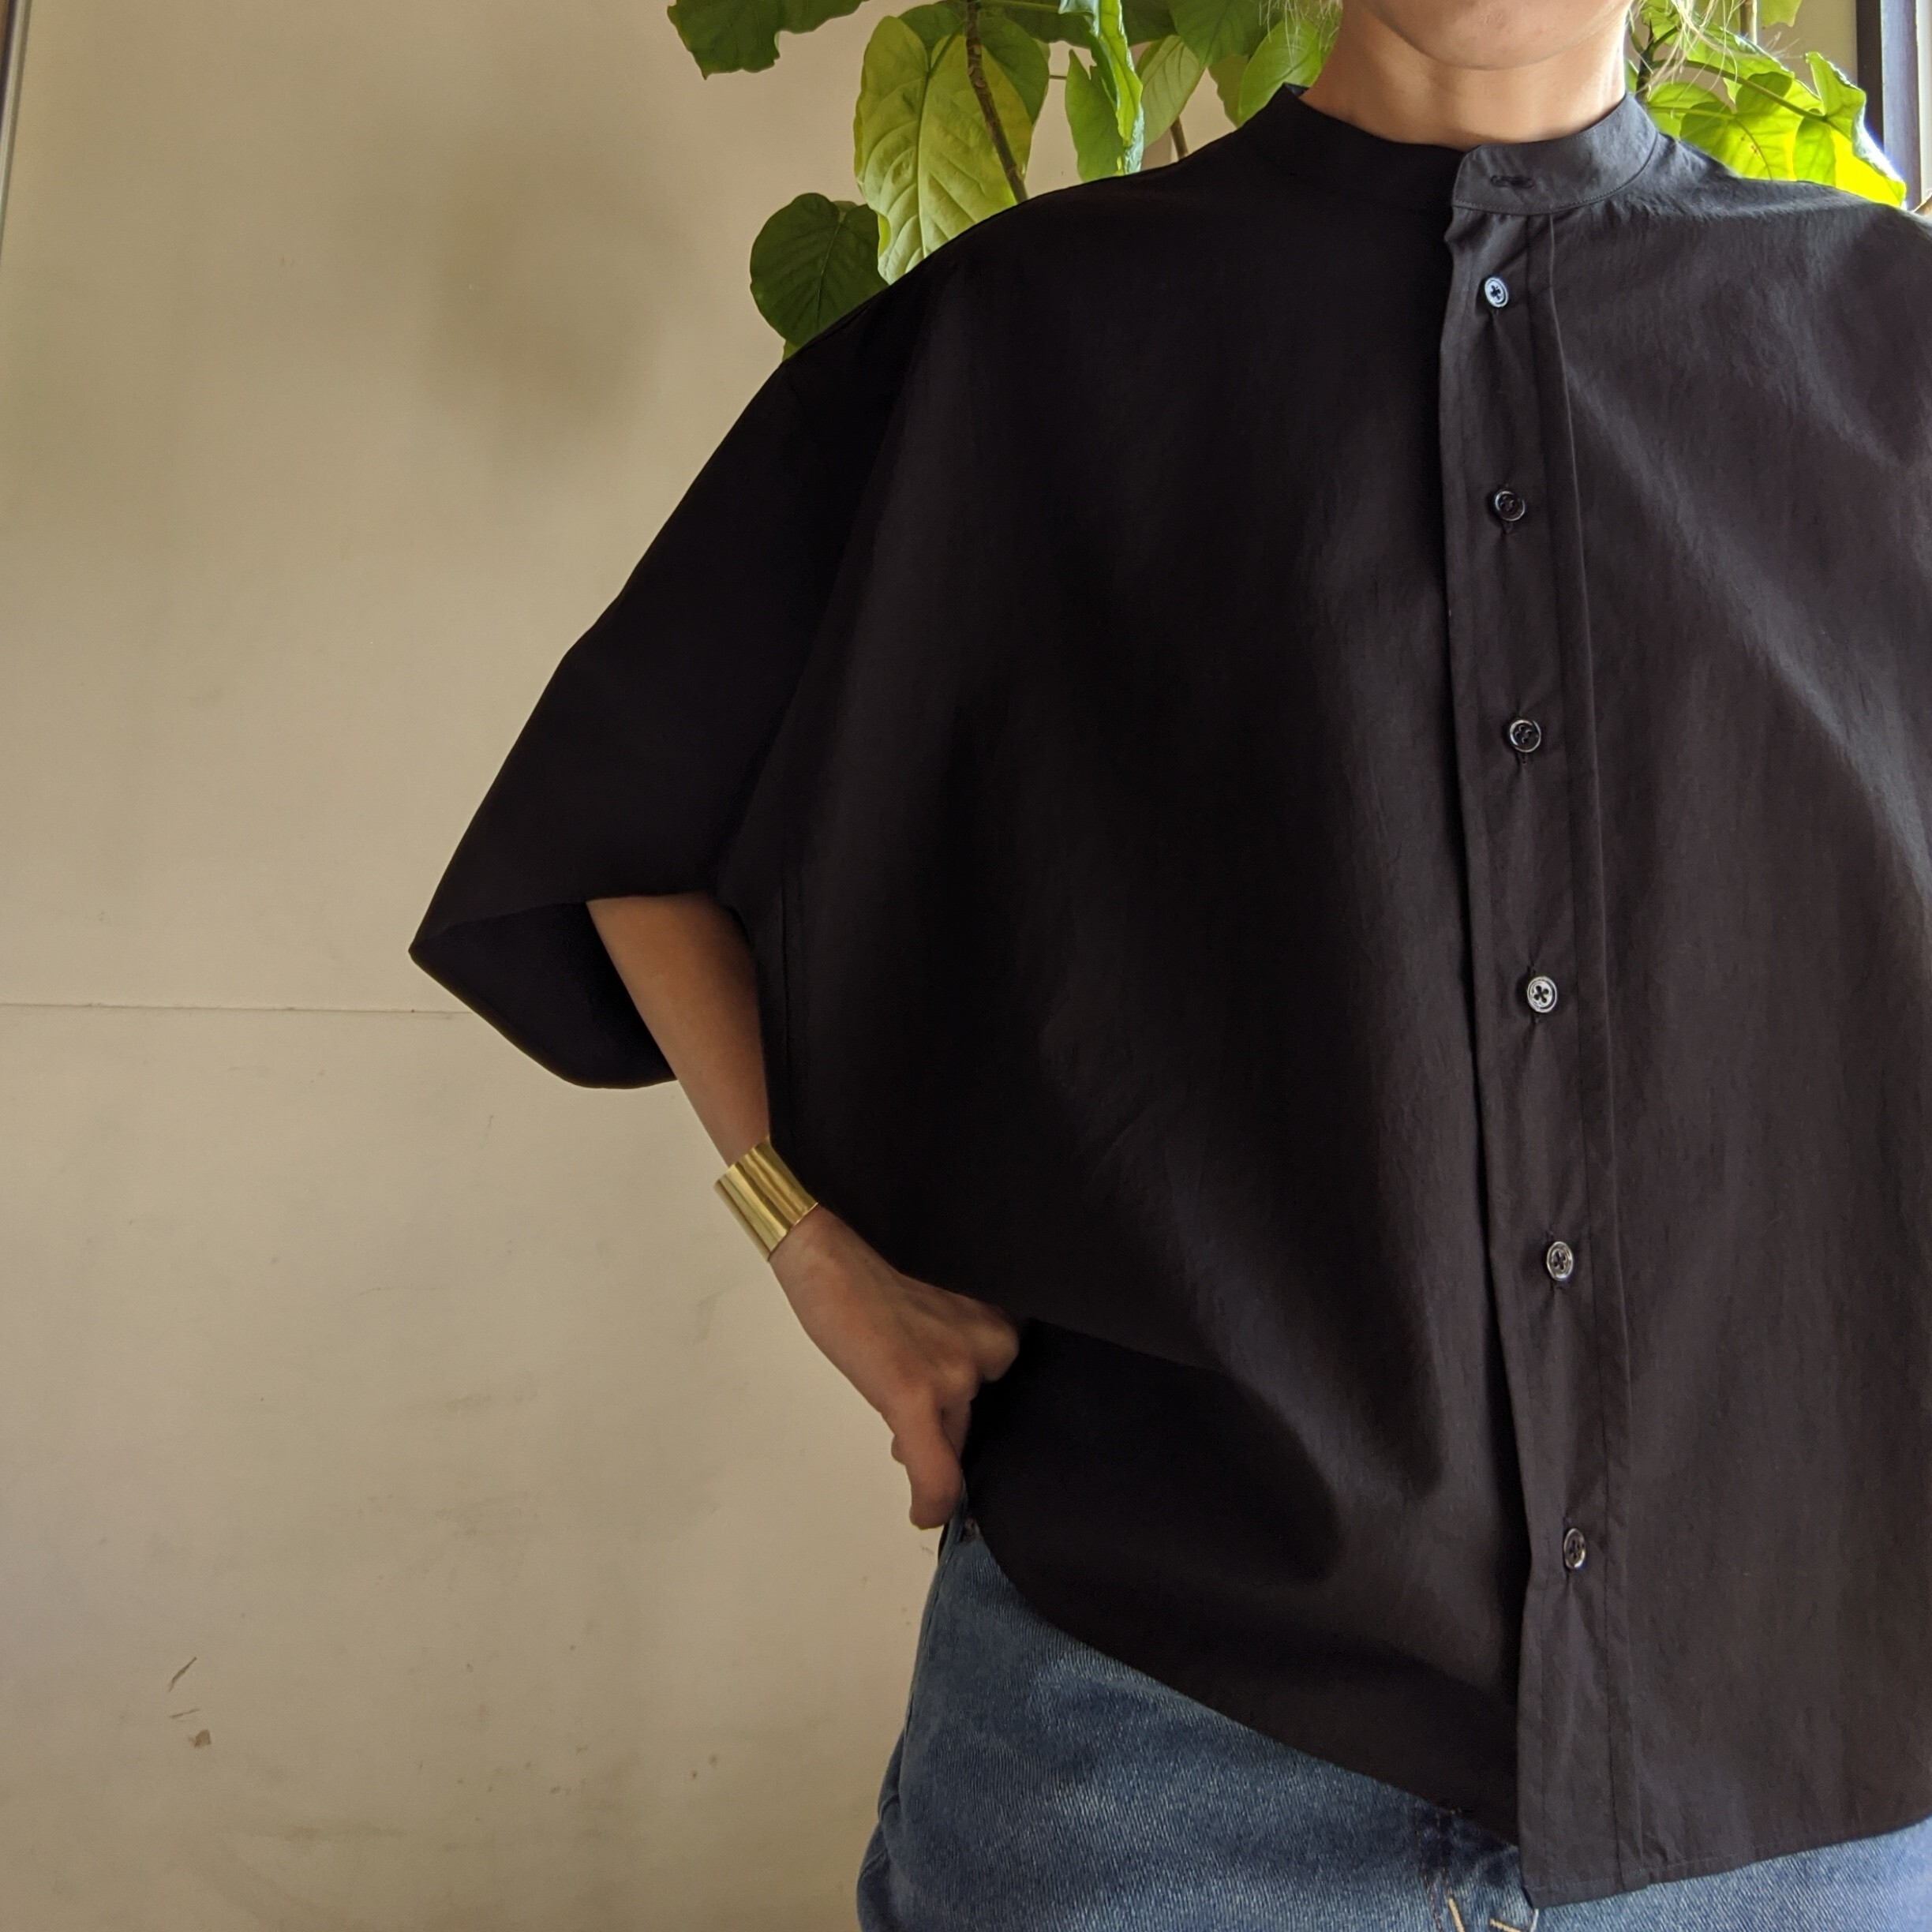 【 OTOÄA 】オトア FOLDED RECTANGLE SHIRT / BLACK